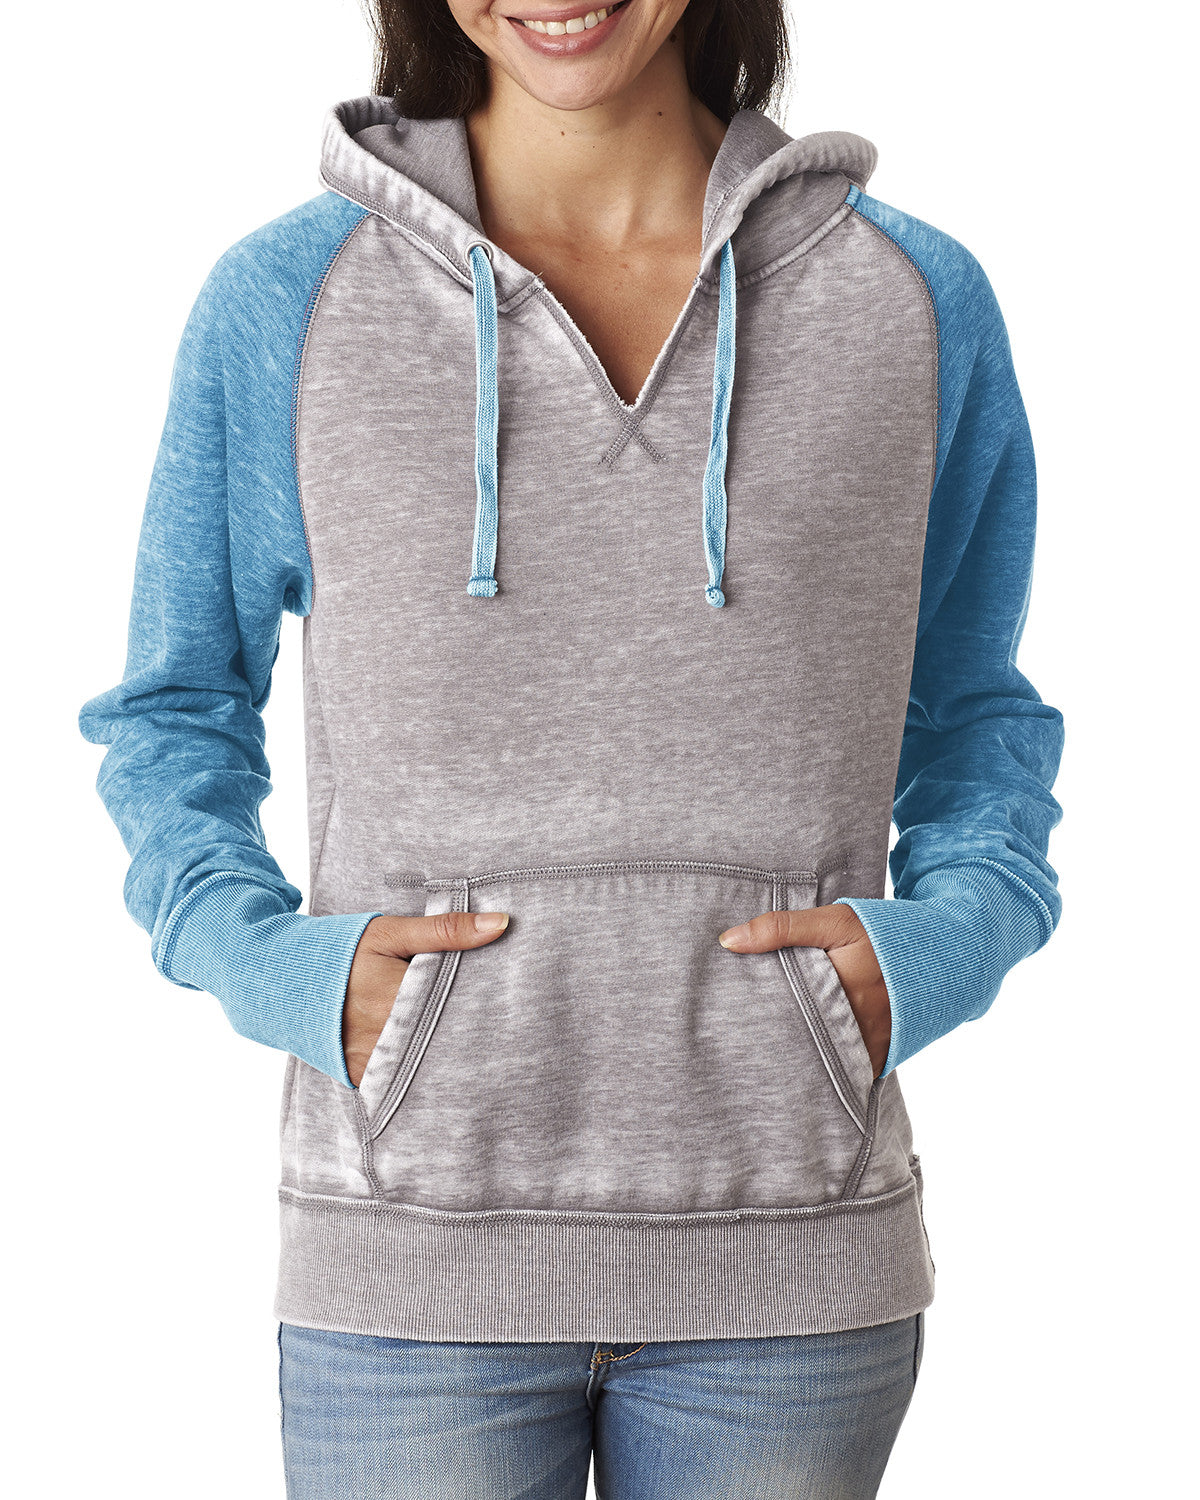 Ladies Zen Fleece Raglan Sleeve Hooded Sweatshirt